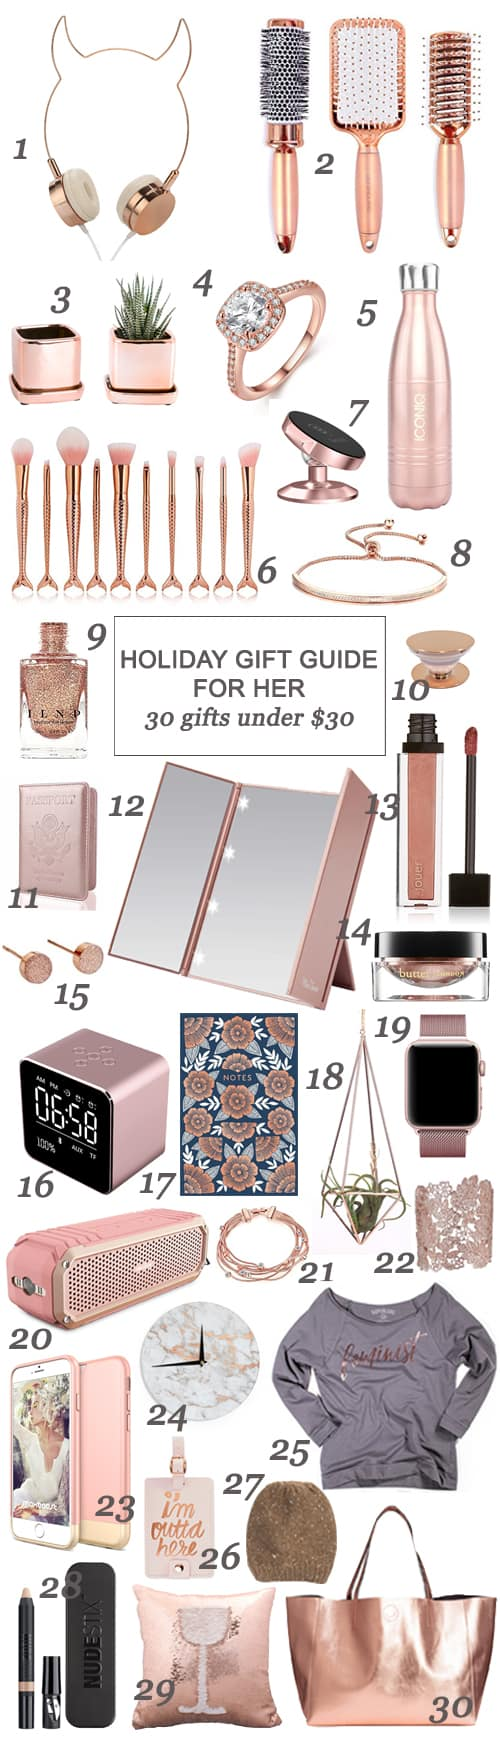 San Antonio lifestyle blogger, Cris Stone, has gathered up a fab collection of options for your sister, bestie, niece, mom, and general gal pals - all for under $30!